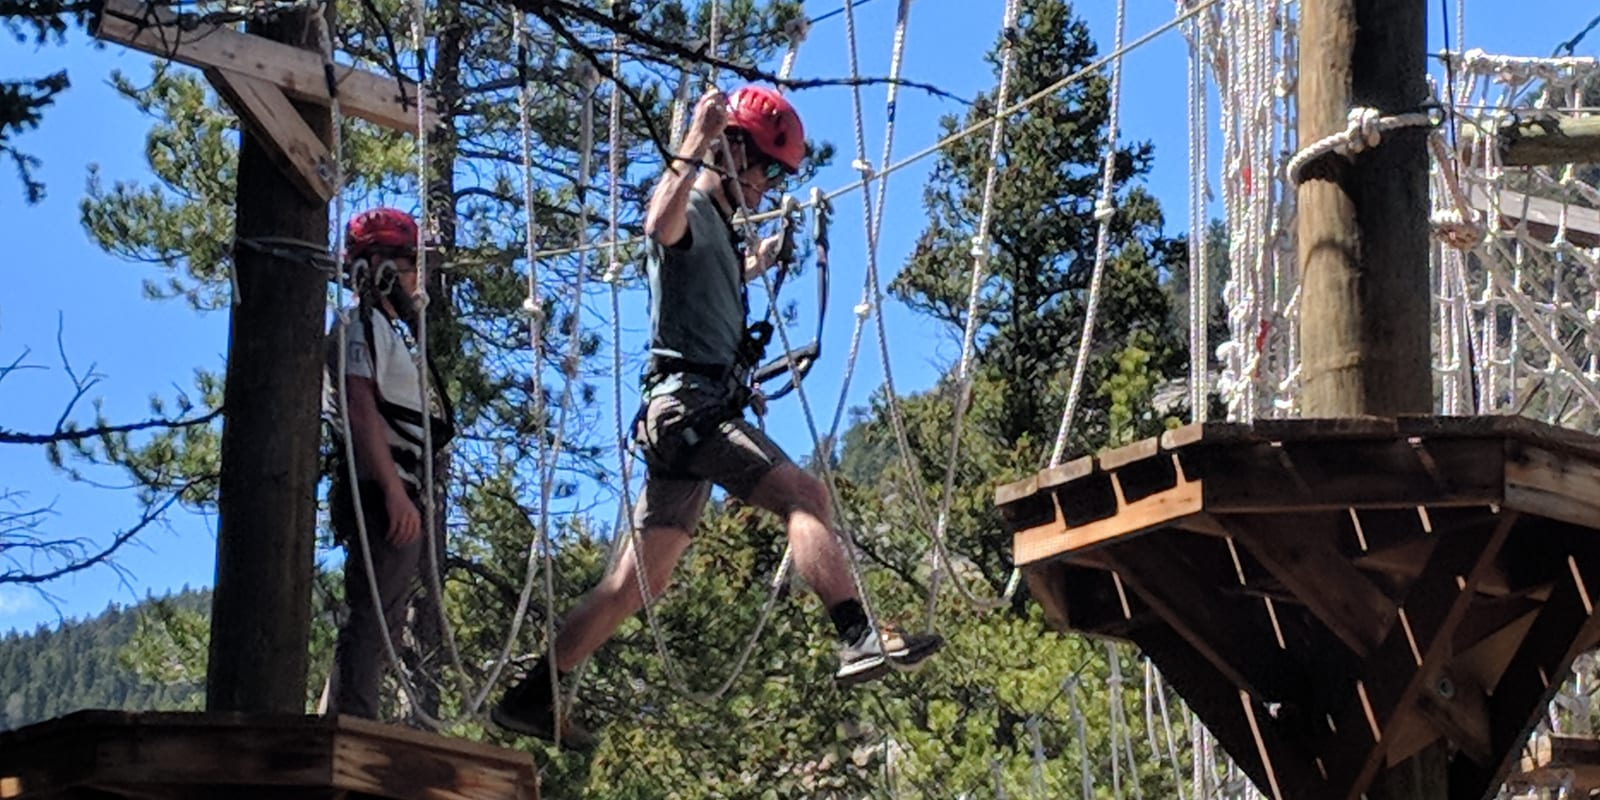 Lawson Adventure Park Resort Dumont Colorado